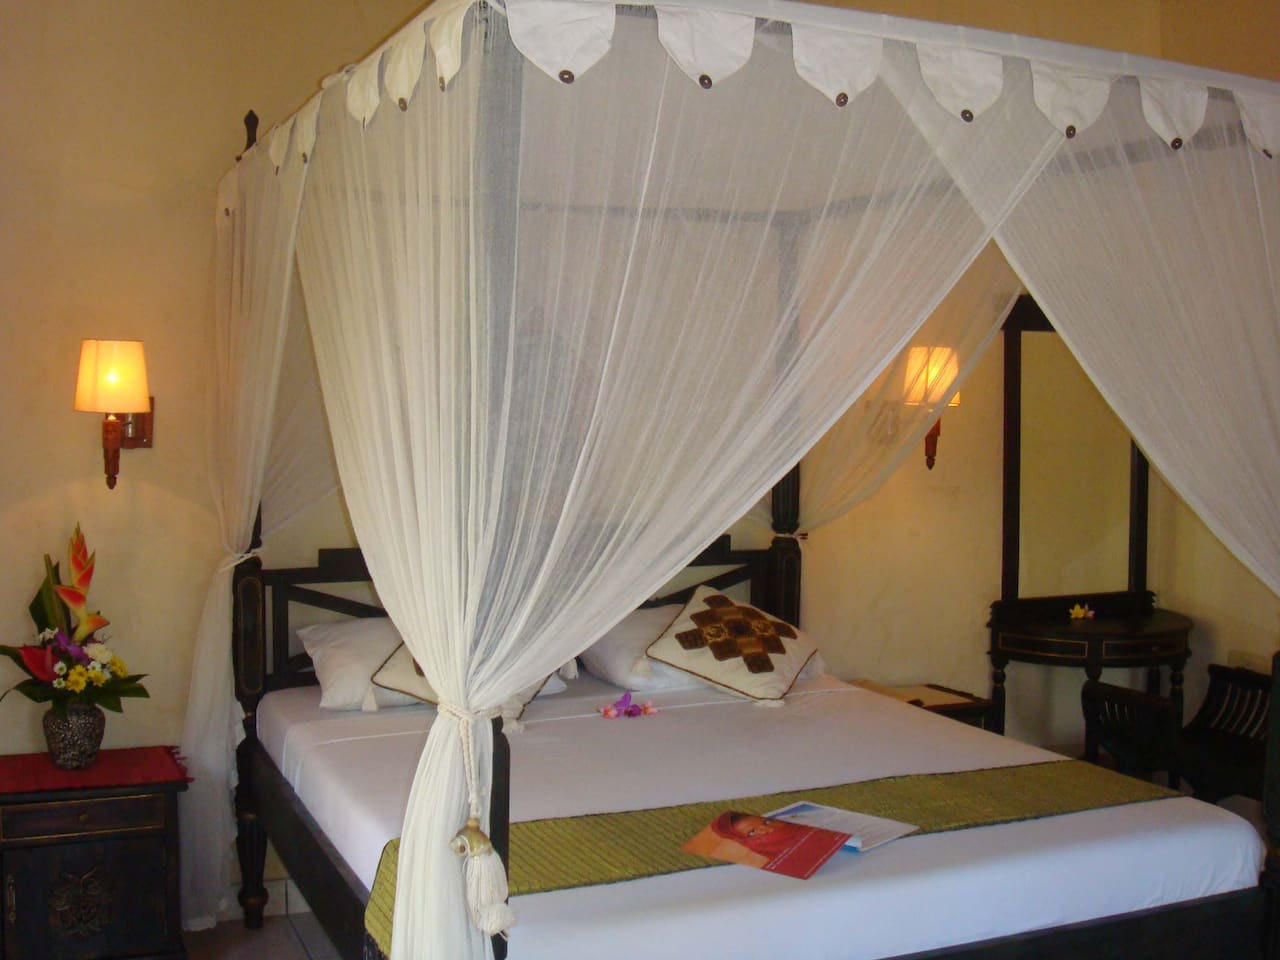 Bed room Superior villa, queen size bed with mosquito net